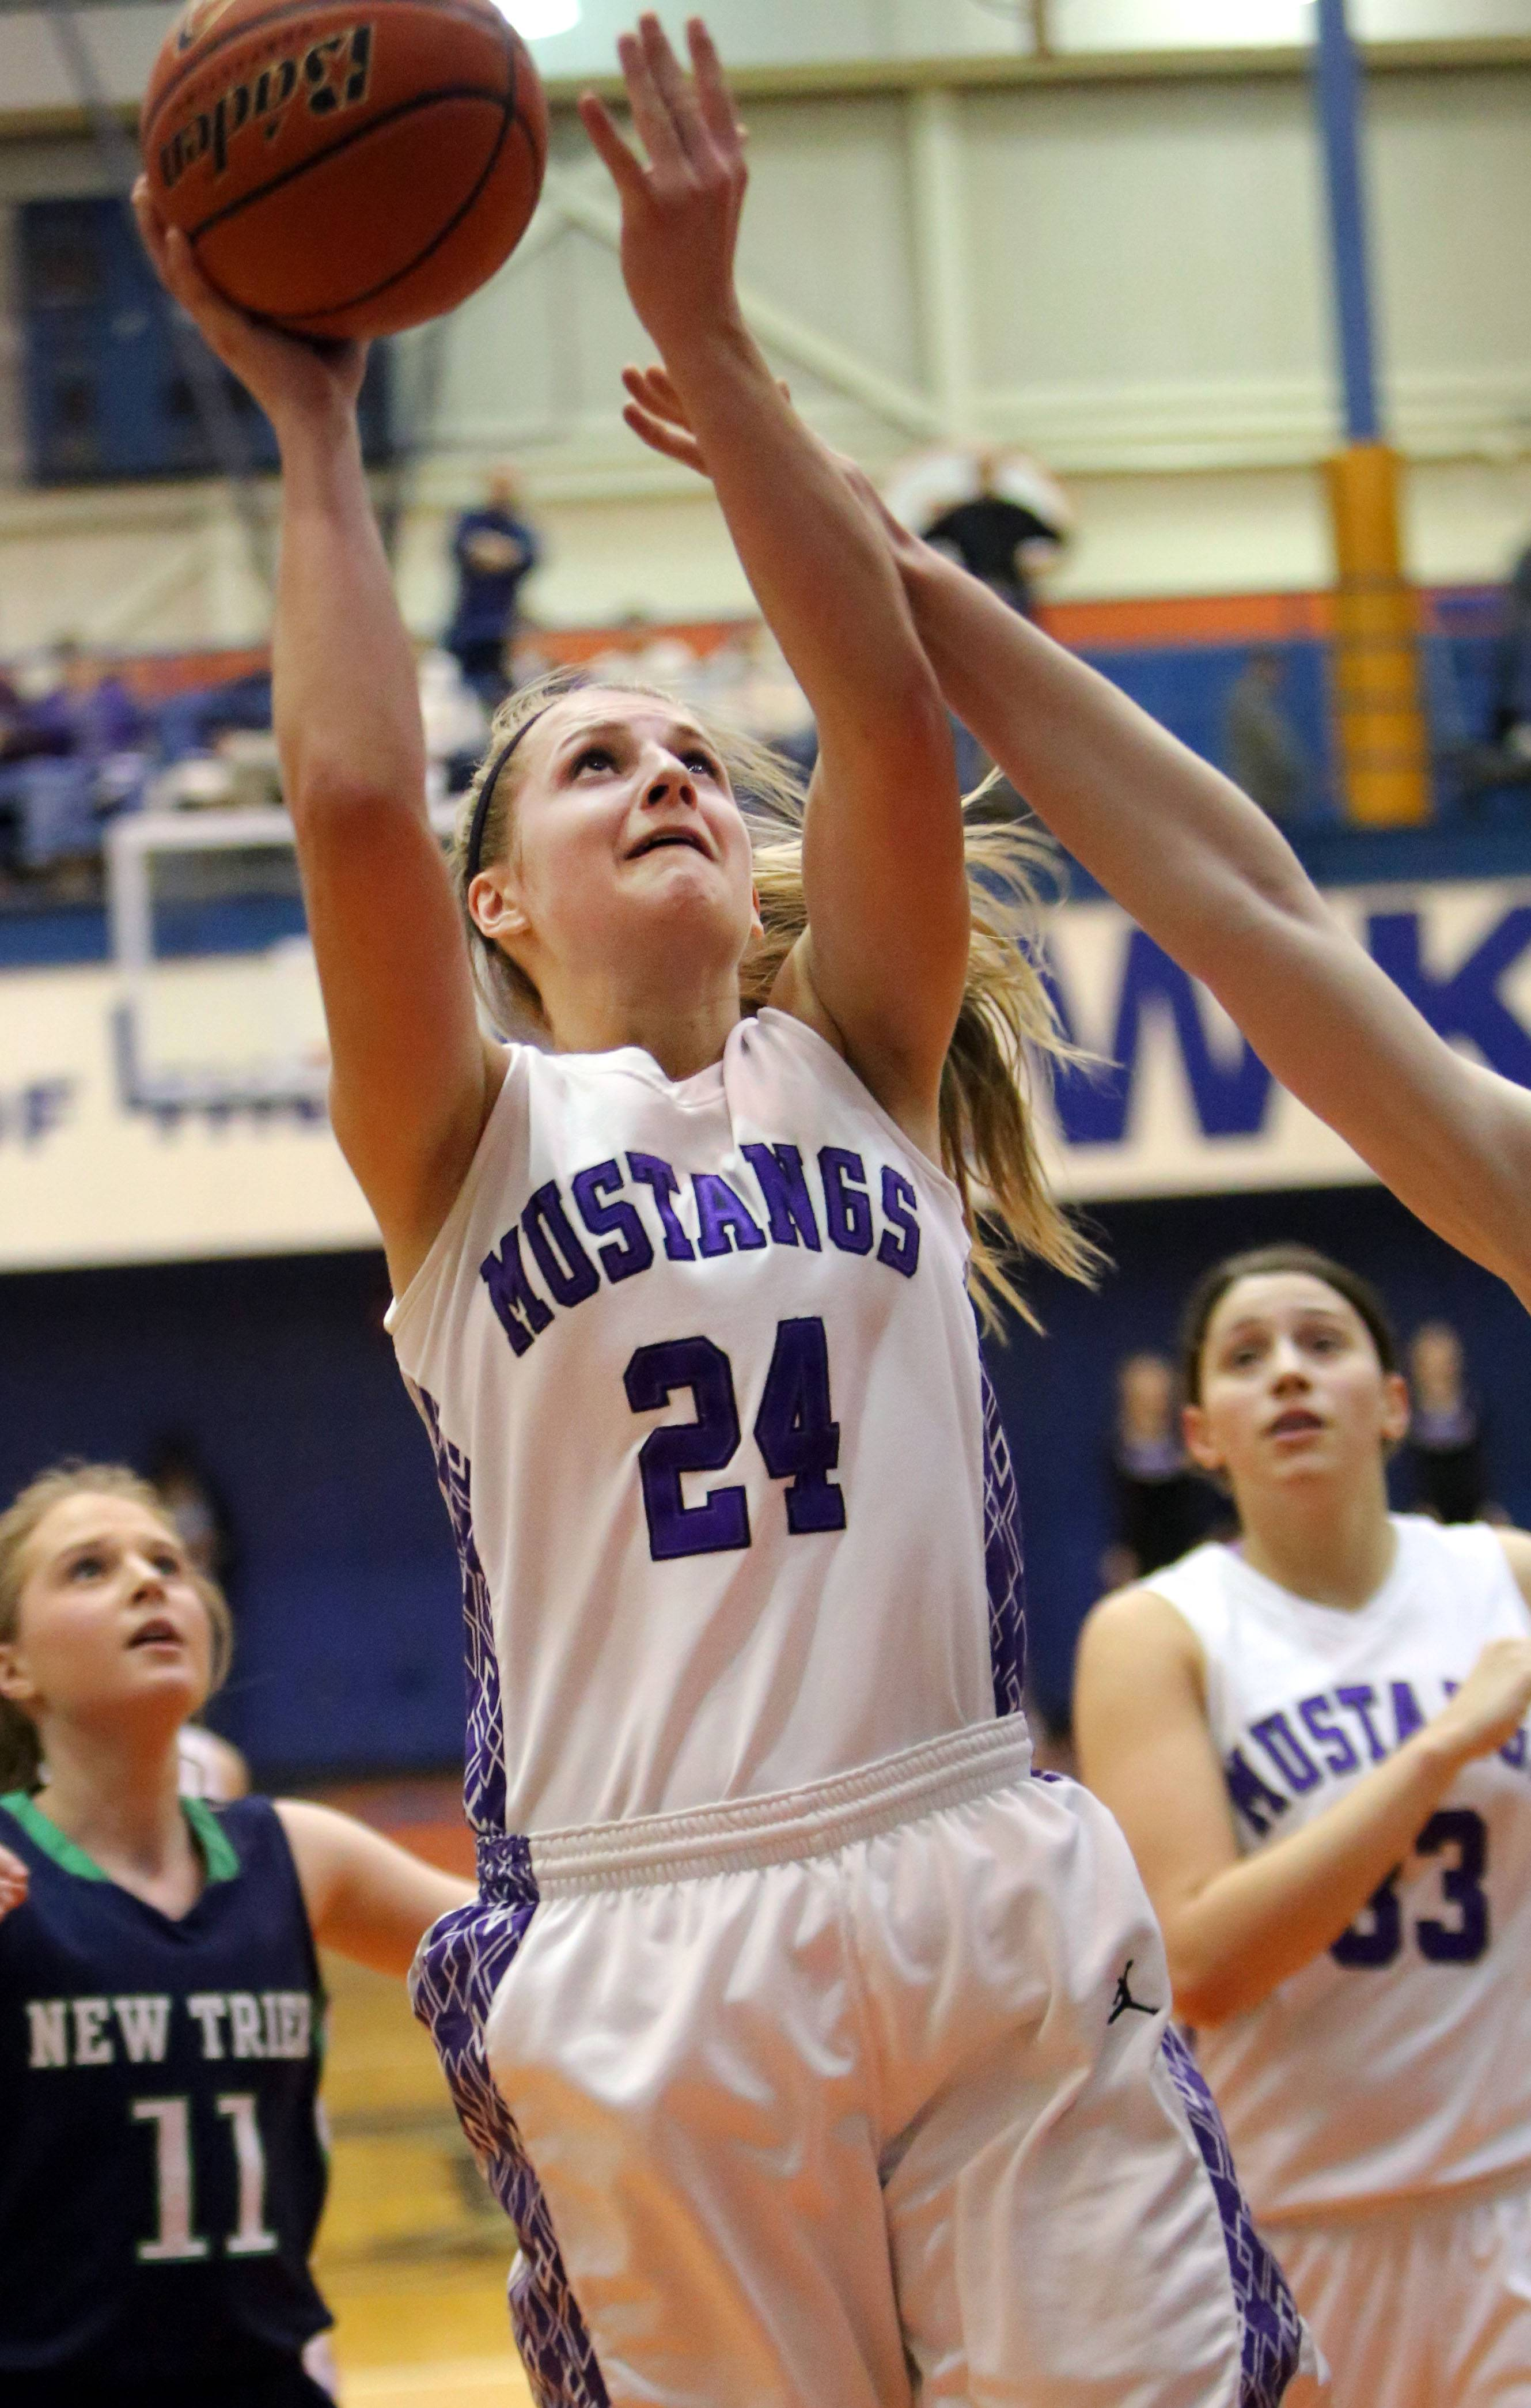 Rolling Meadows' Alexis Glasgow drives to the hoop.